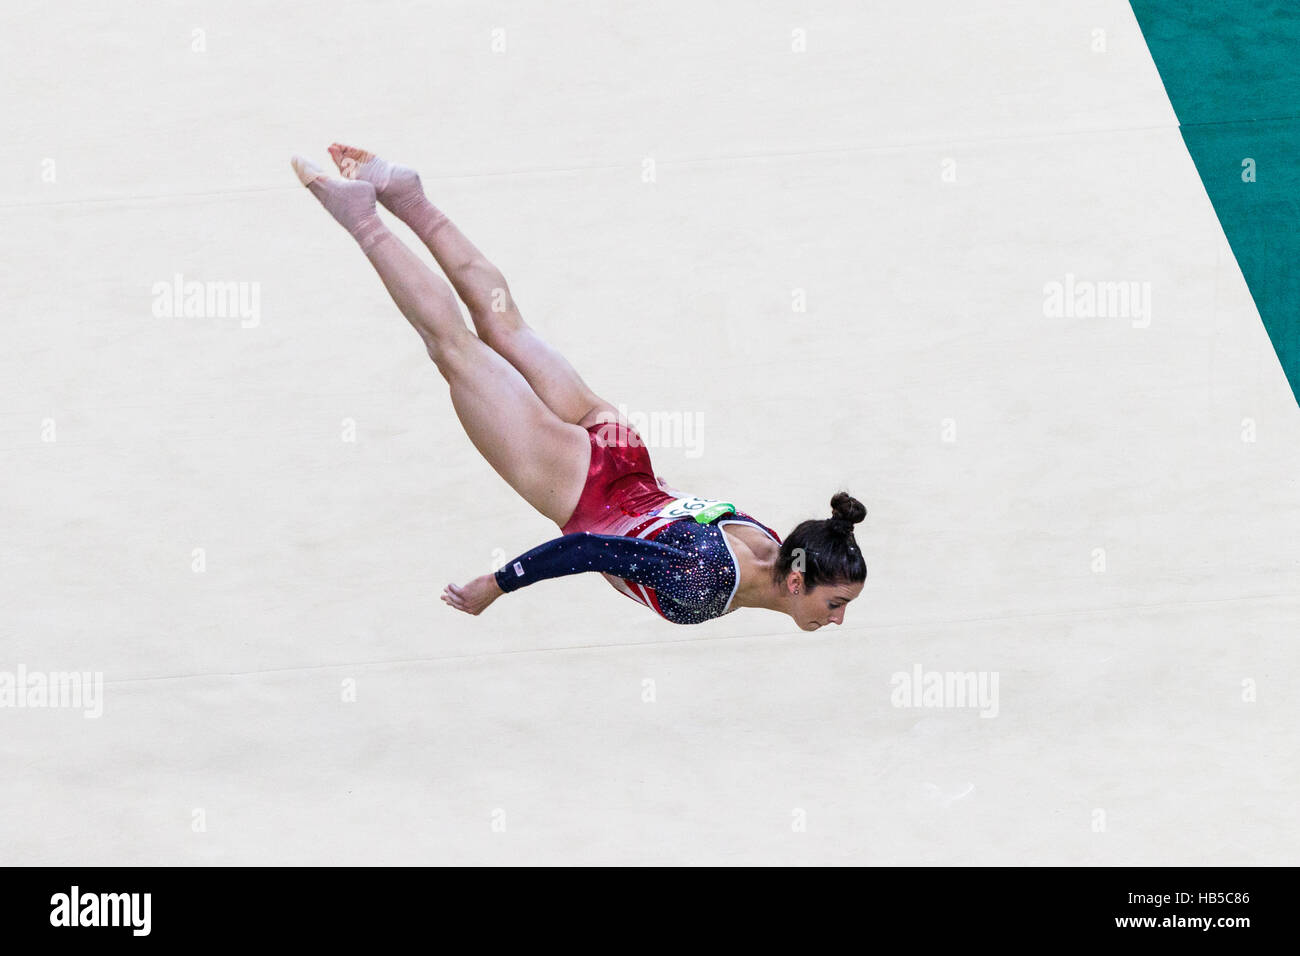 Rio de Janeiro, Brazil. 9 August 2016.  Alexandra Raisman (USA) performs the floor exercise as part of the Gold - Stock Image